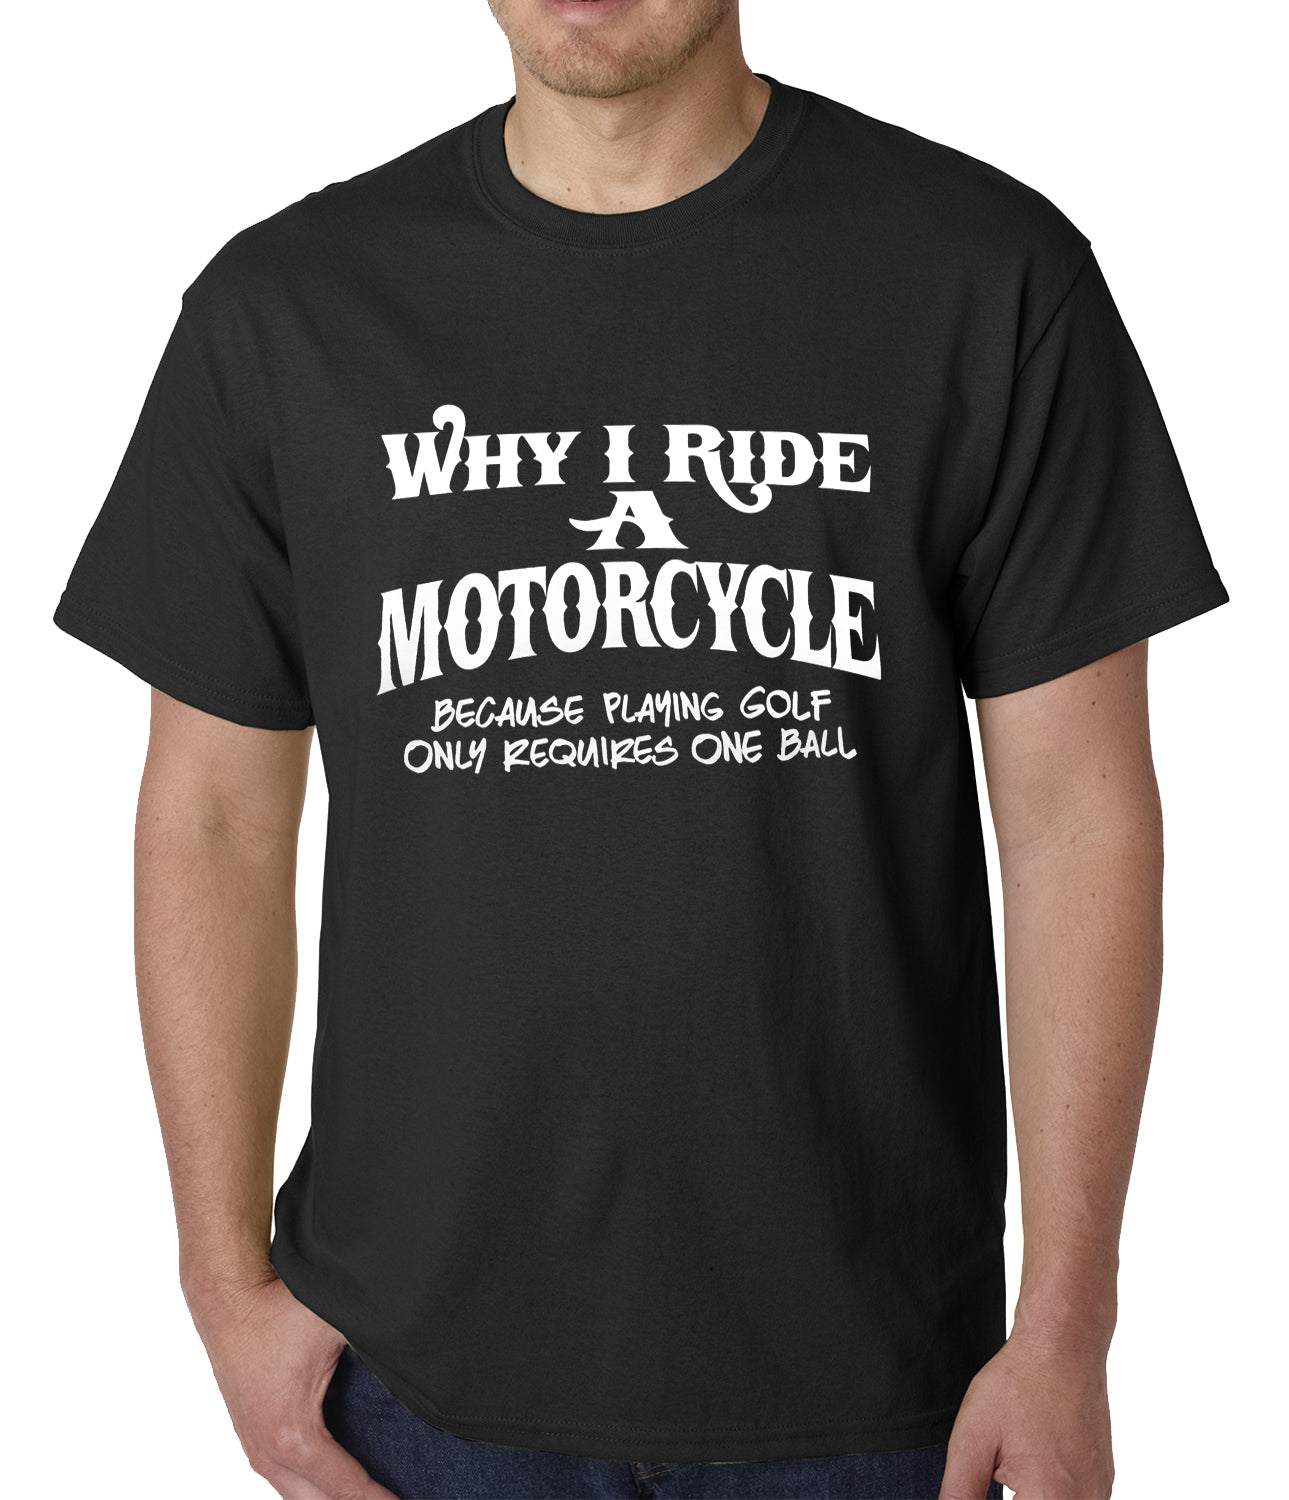 e7b097cd7 Why I Ride a Motorcycle Mens T-shirt – Bewild